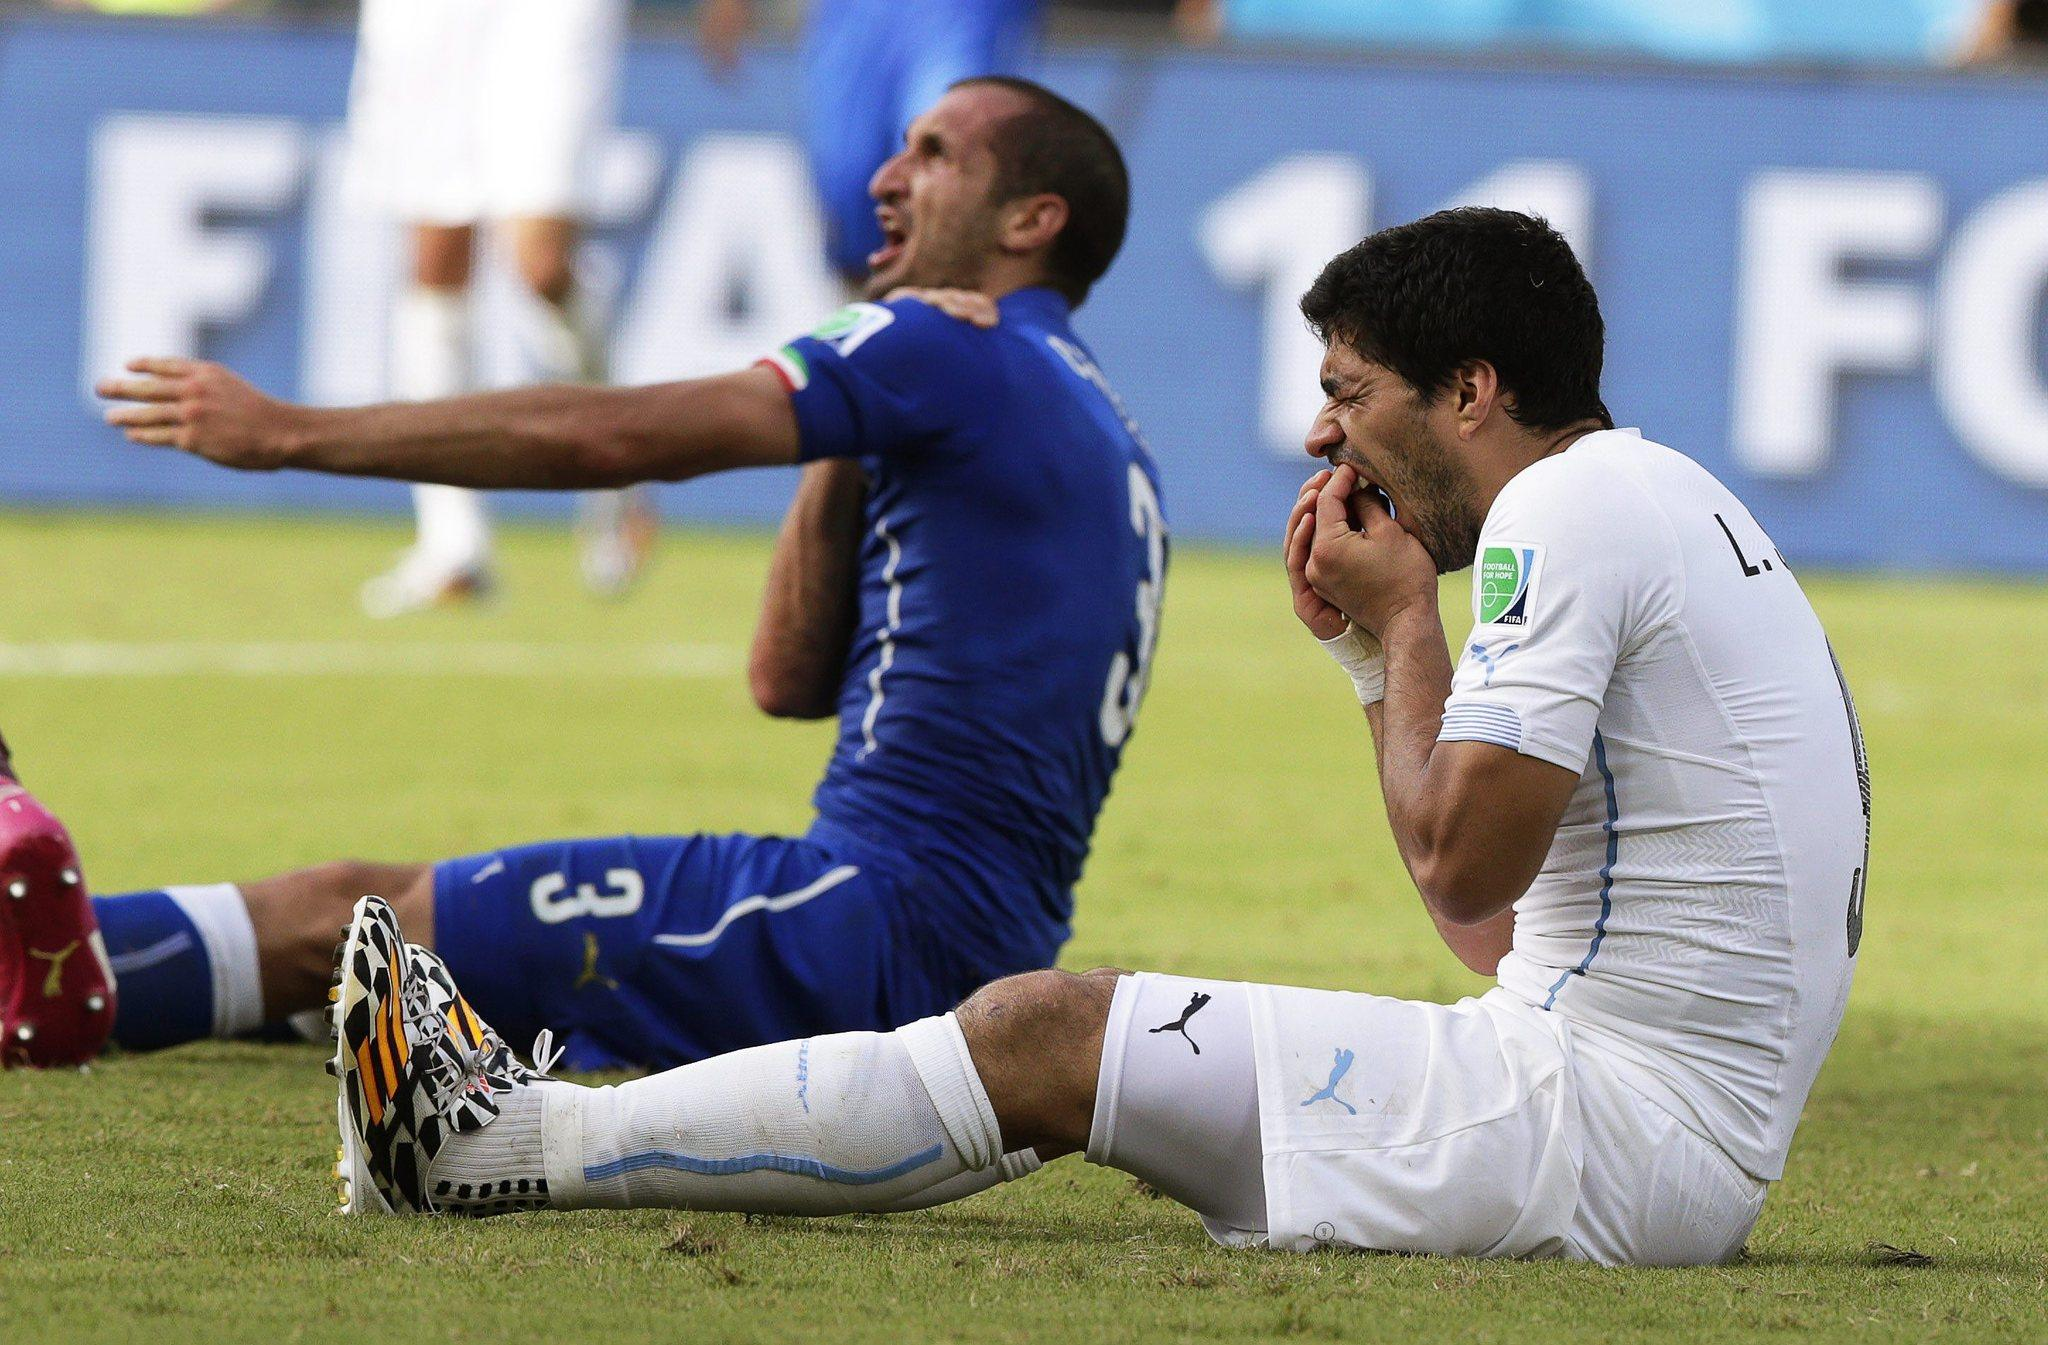 Italy's Giorgio Chiellini (left) claims he was bitten by Uruguay's Luis Suarez during their Group D match.